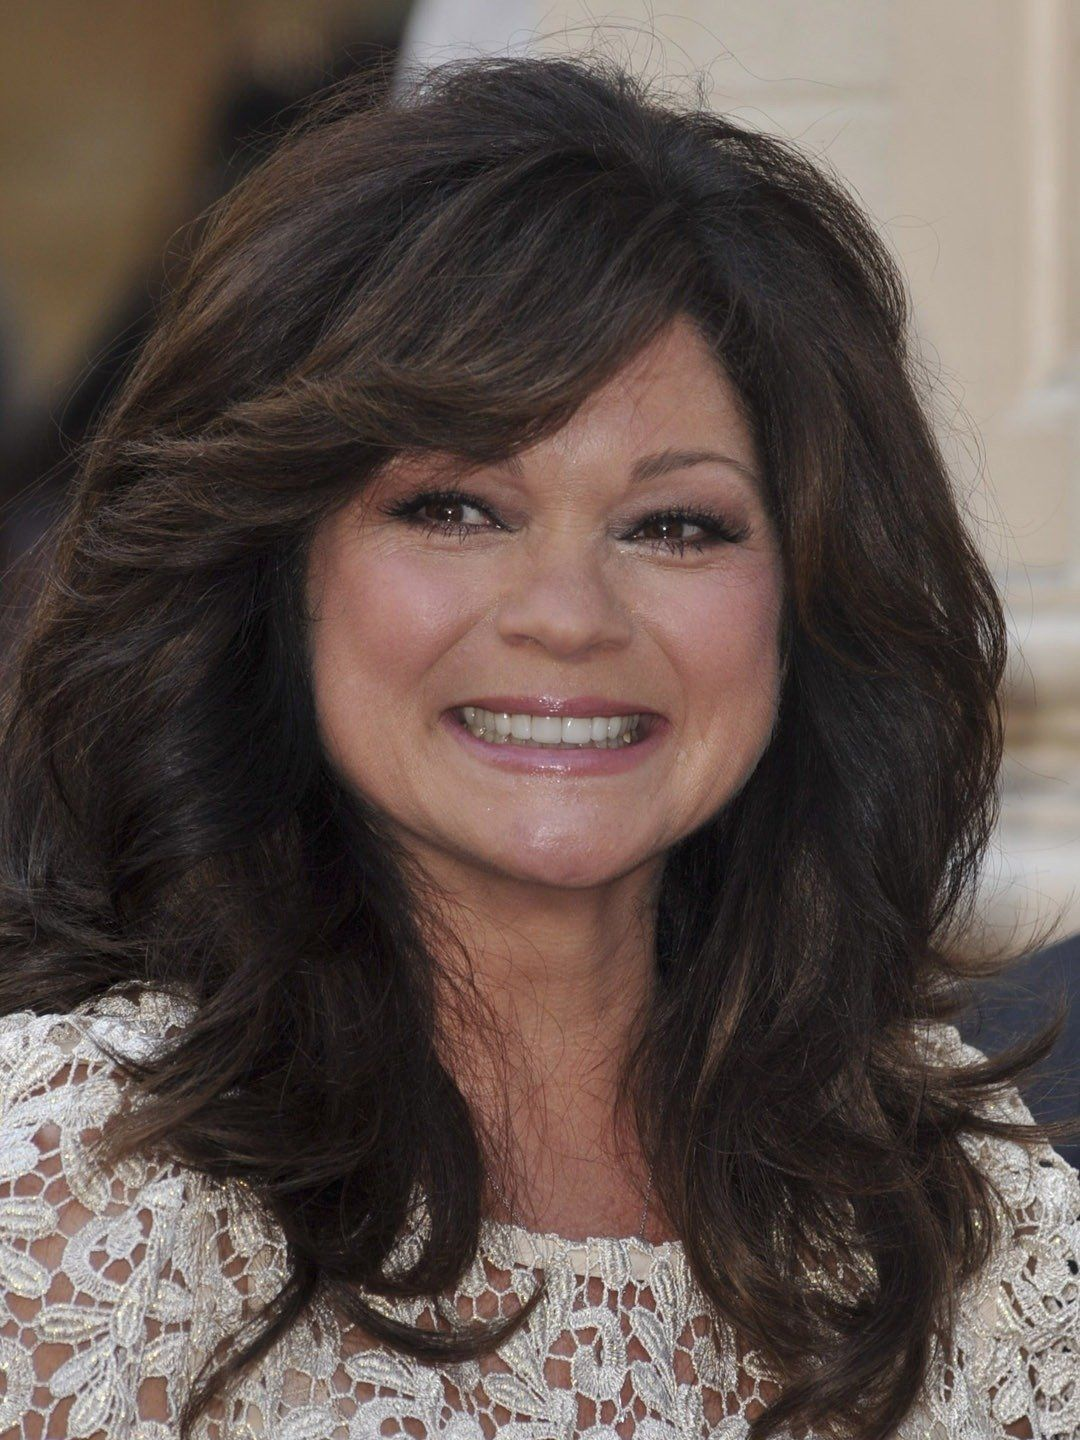 Image Result For Valerie Bertinelli Young Valerie Bertinelli Young Valerie Bertinelli Gorgeous Women